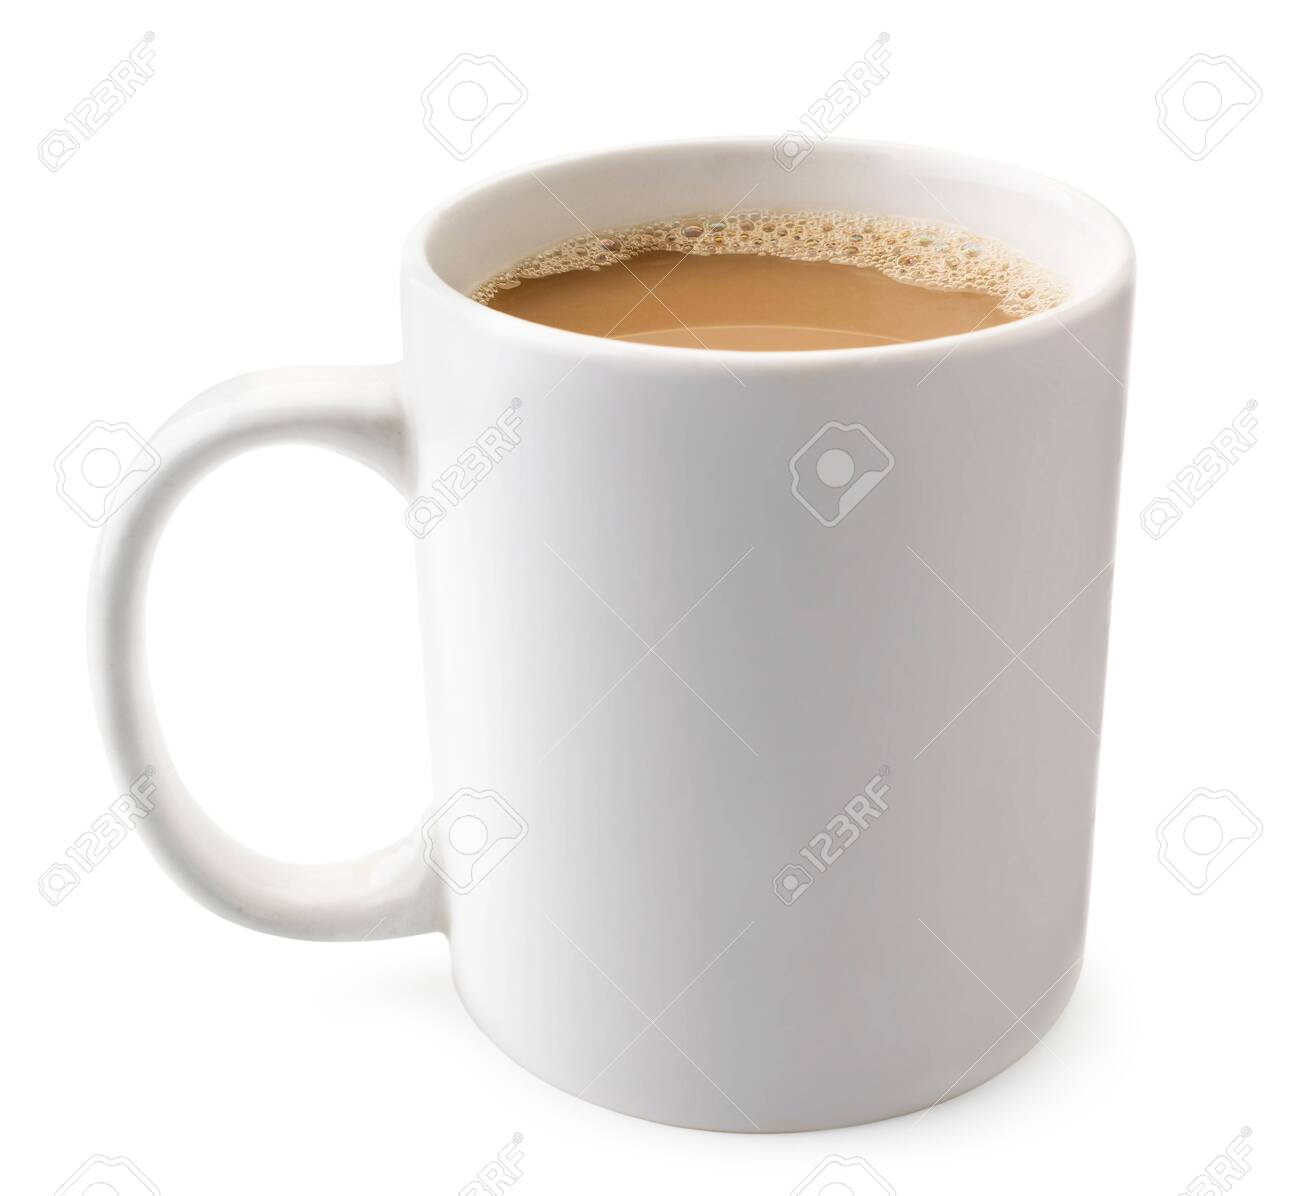 Cup of coffee on a white background. Isolated - 131762134